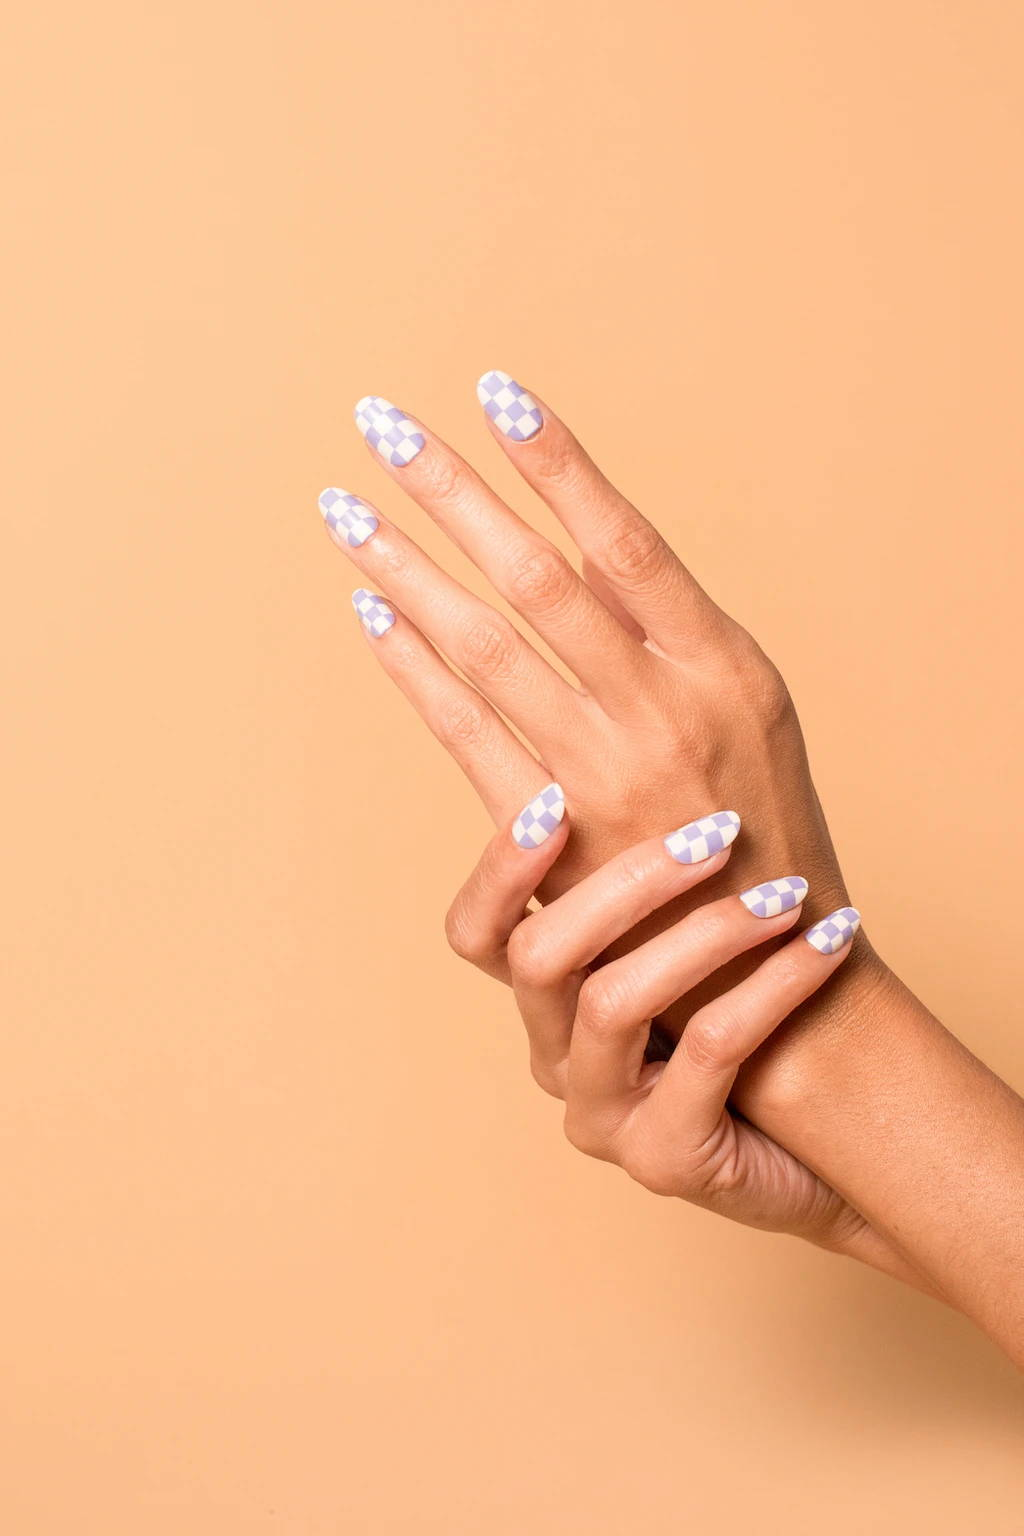 Get chill tips on non-toxic trendy nail designs